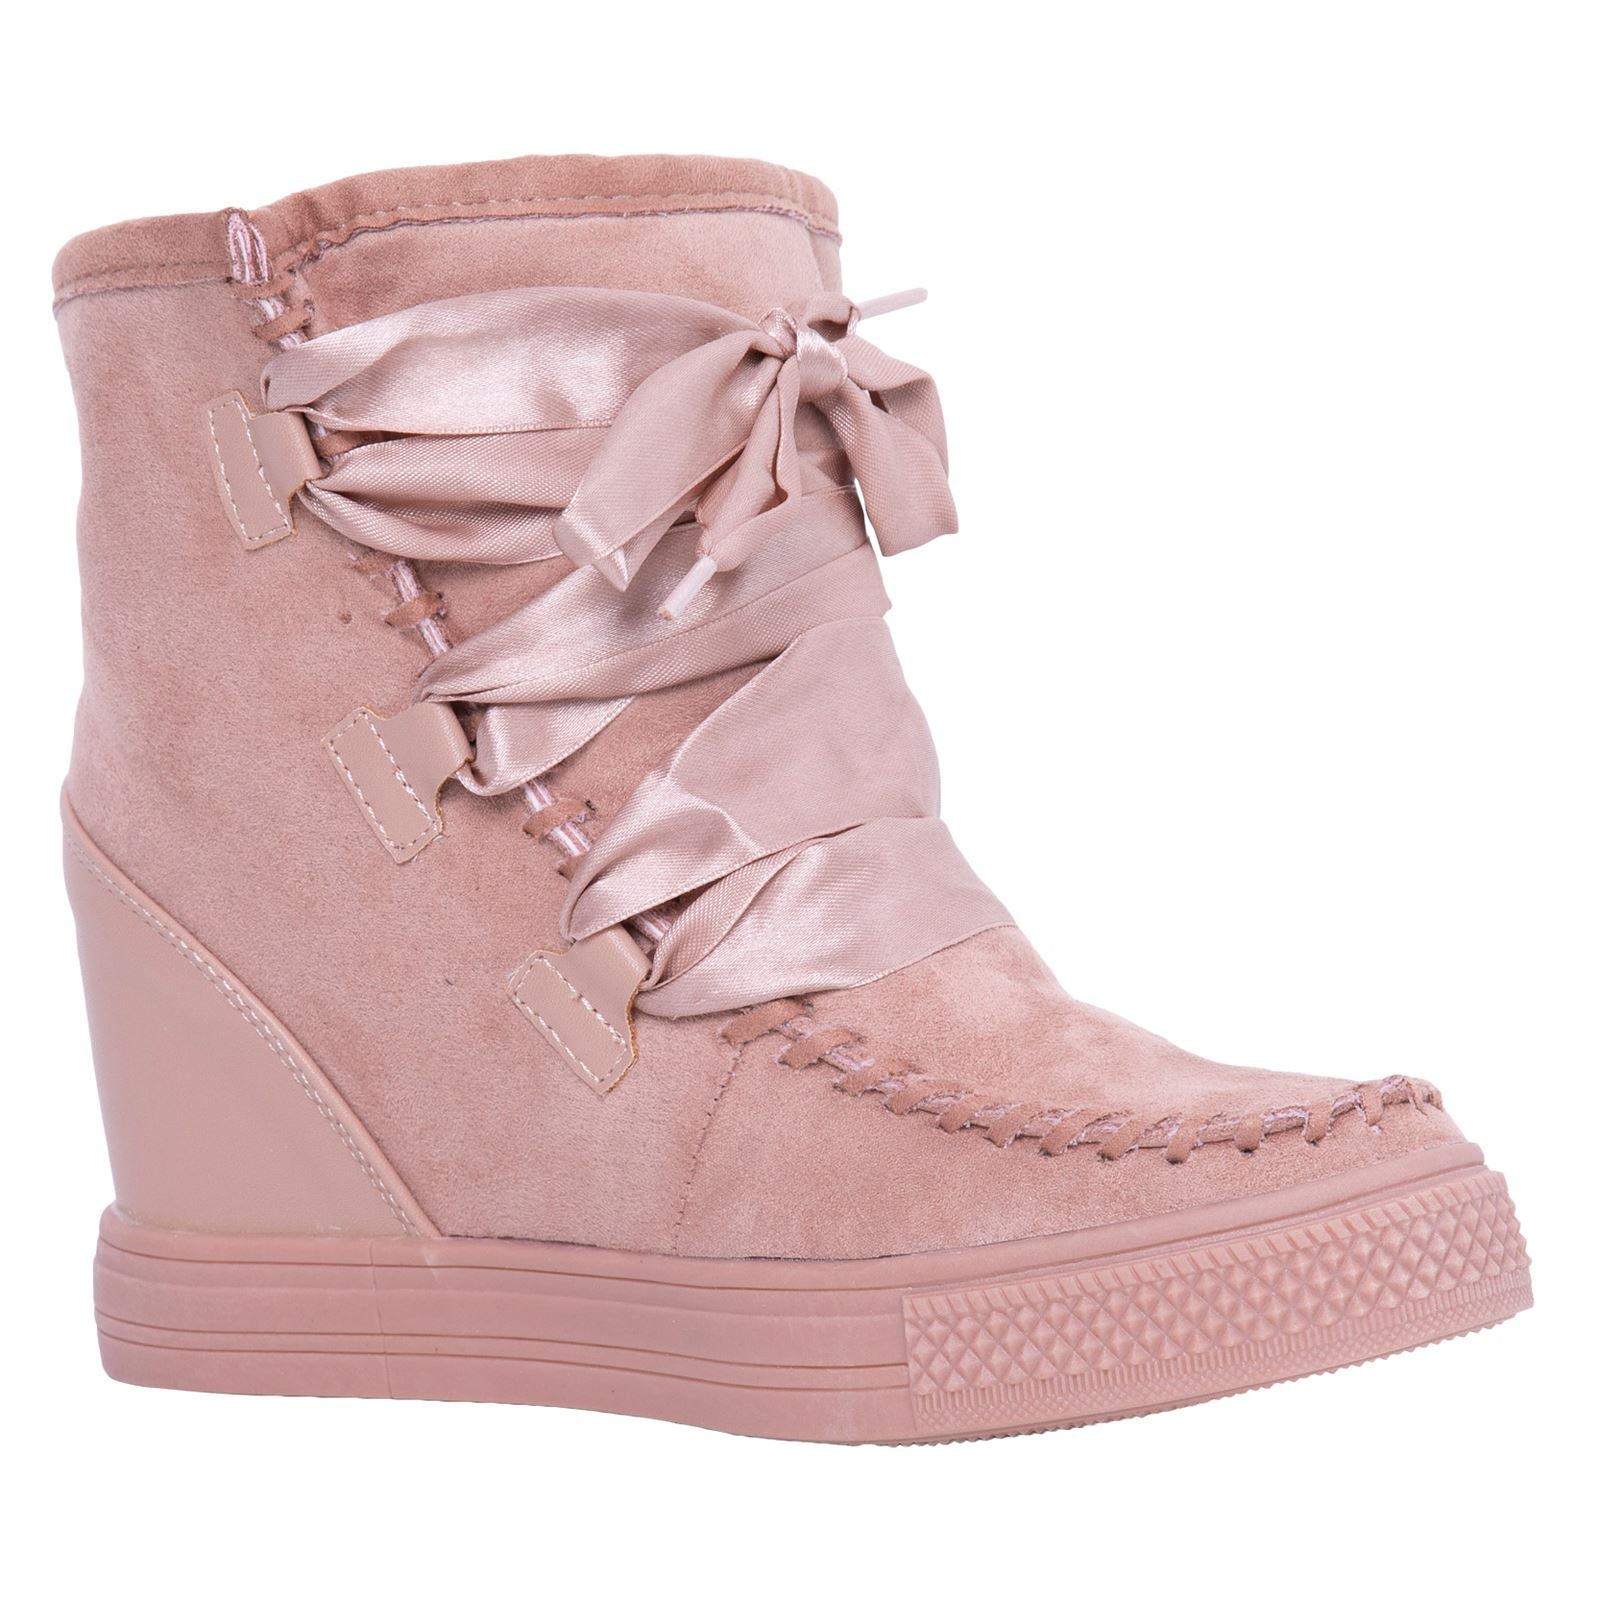 Kacee Stylish Wedge Trainers in Pink With Ribbon